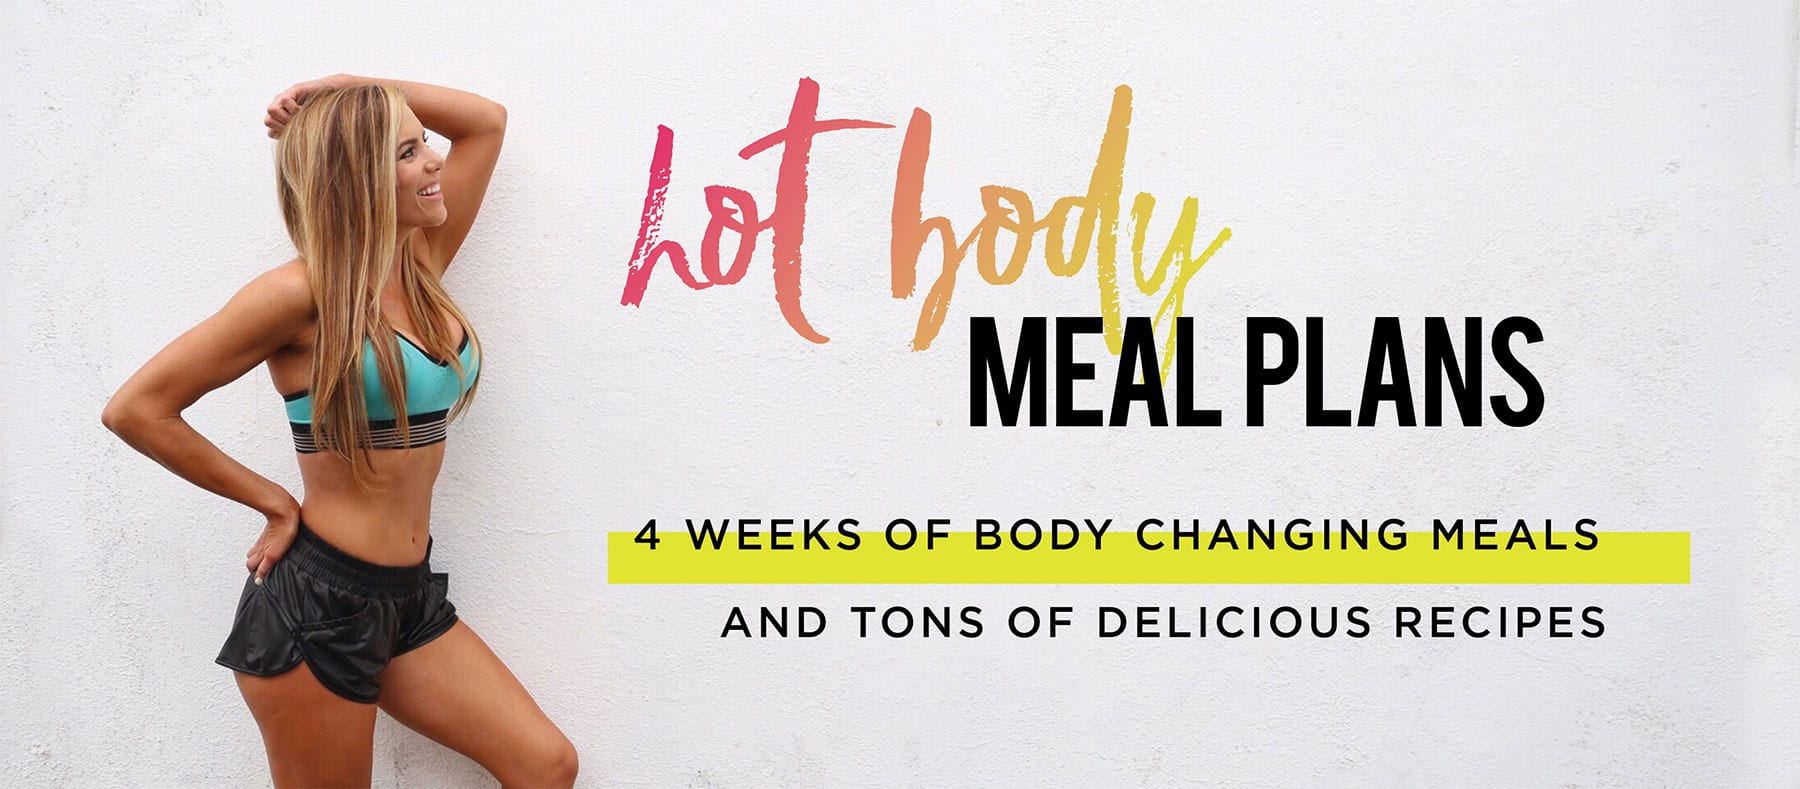 hot body 4 week meal plan for weight loss